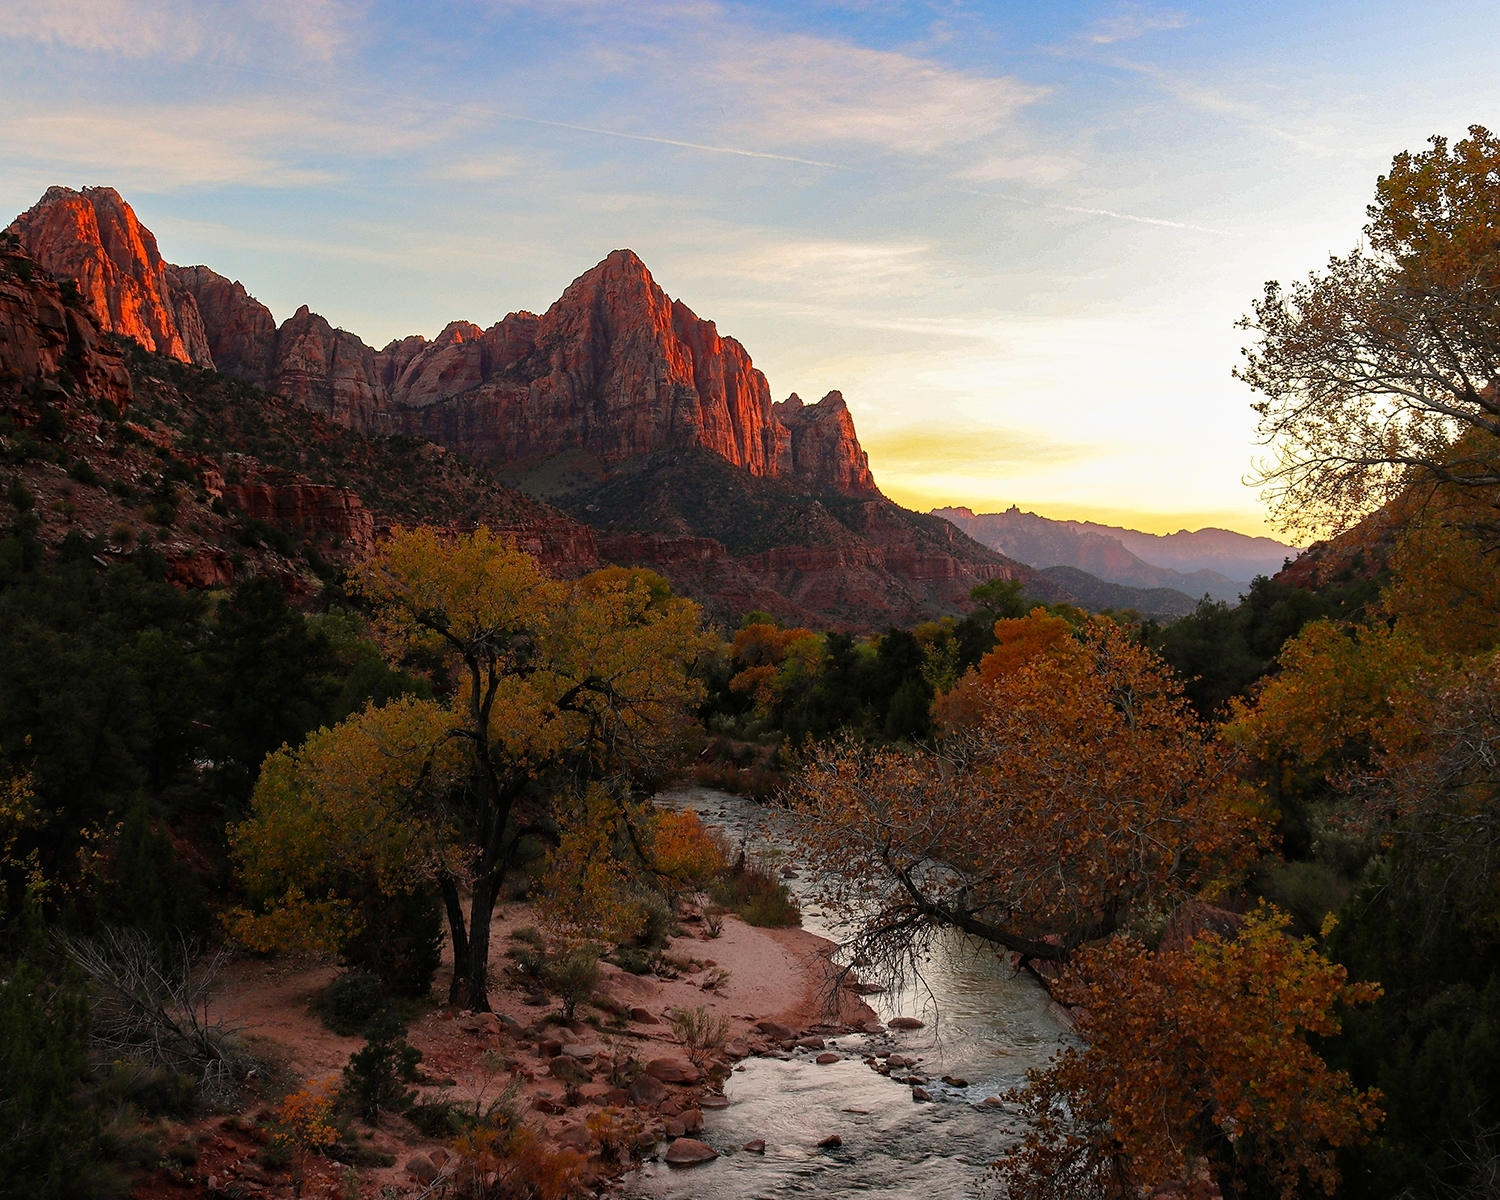 An-Autumn-Evening-at-Zion-National-Park-PI-Best-in-Show-by-Tito-Guerrero-PE